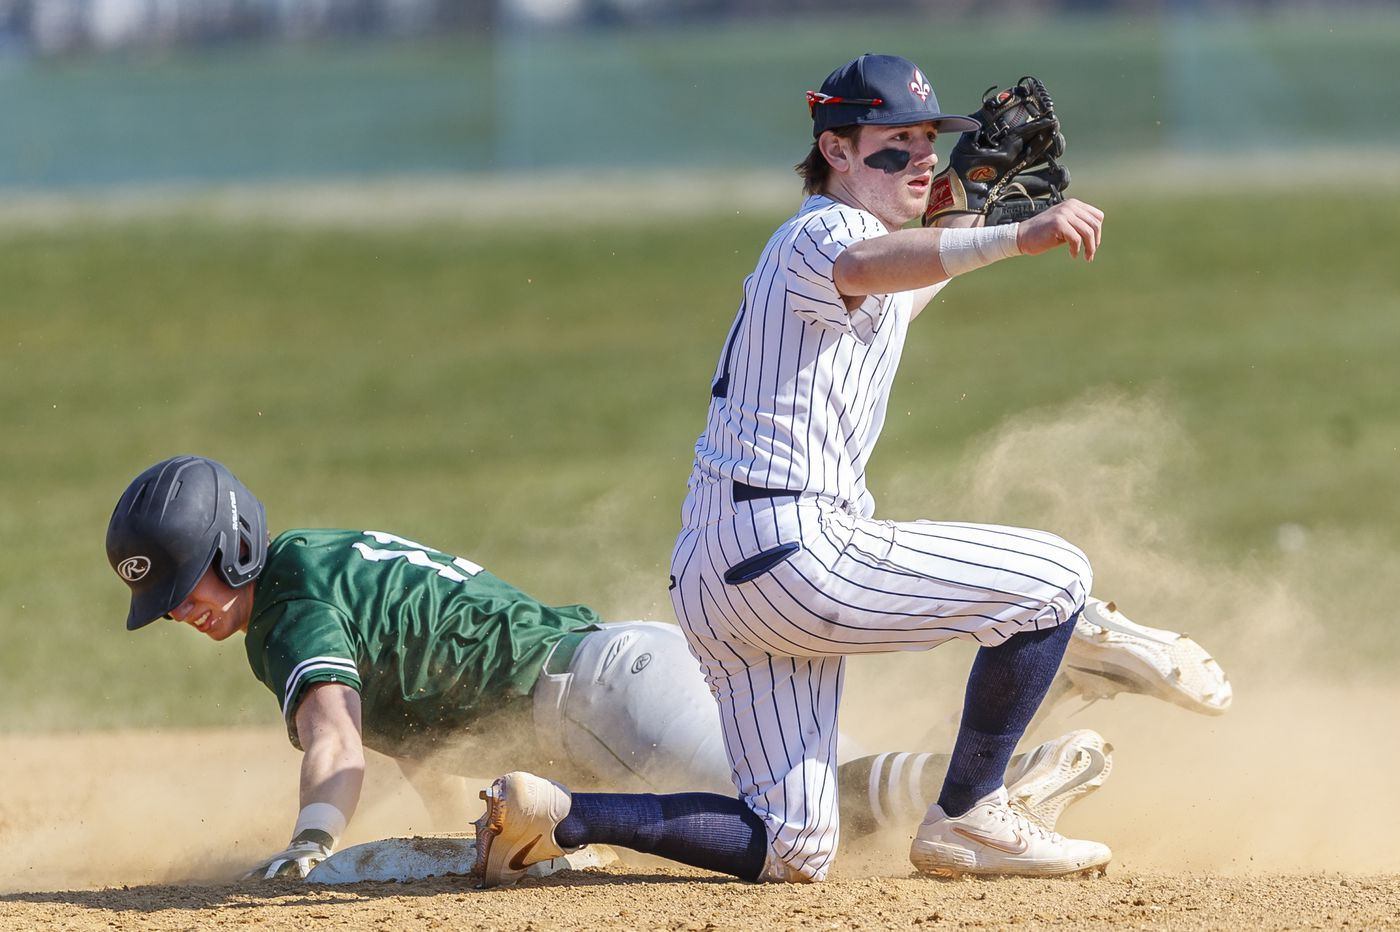 It's a quick transition from winter sports to baseball for a pair of Holy Ghost Prep players